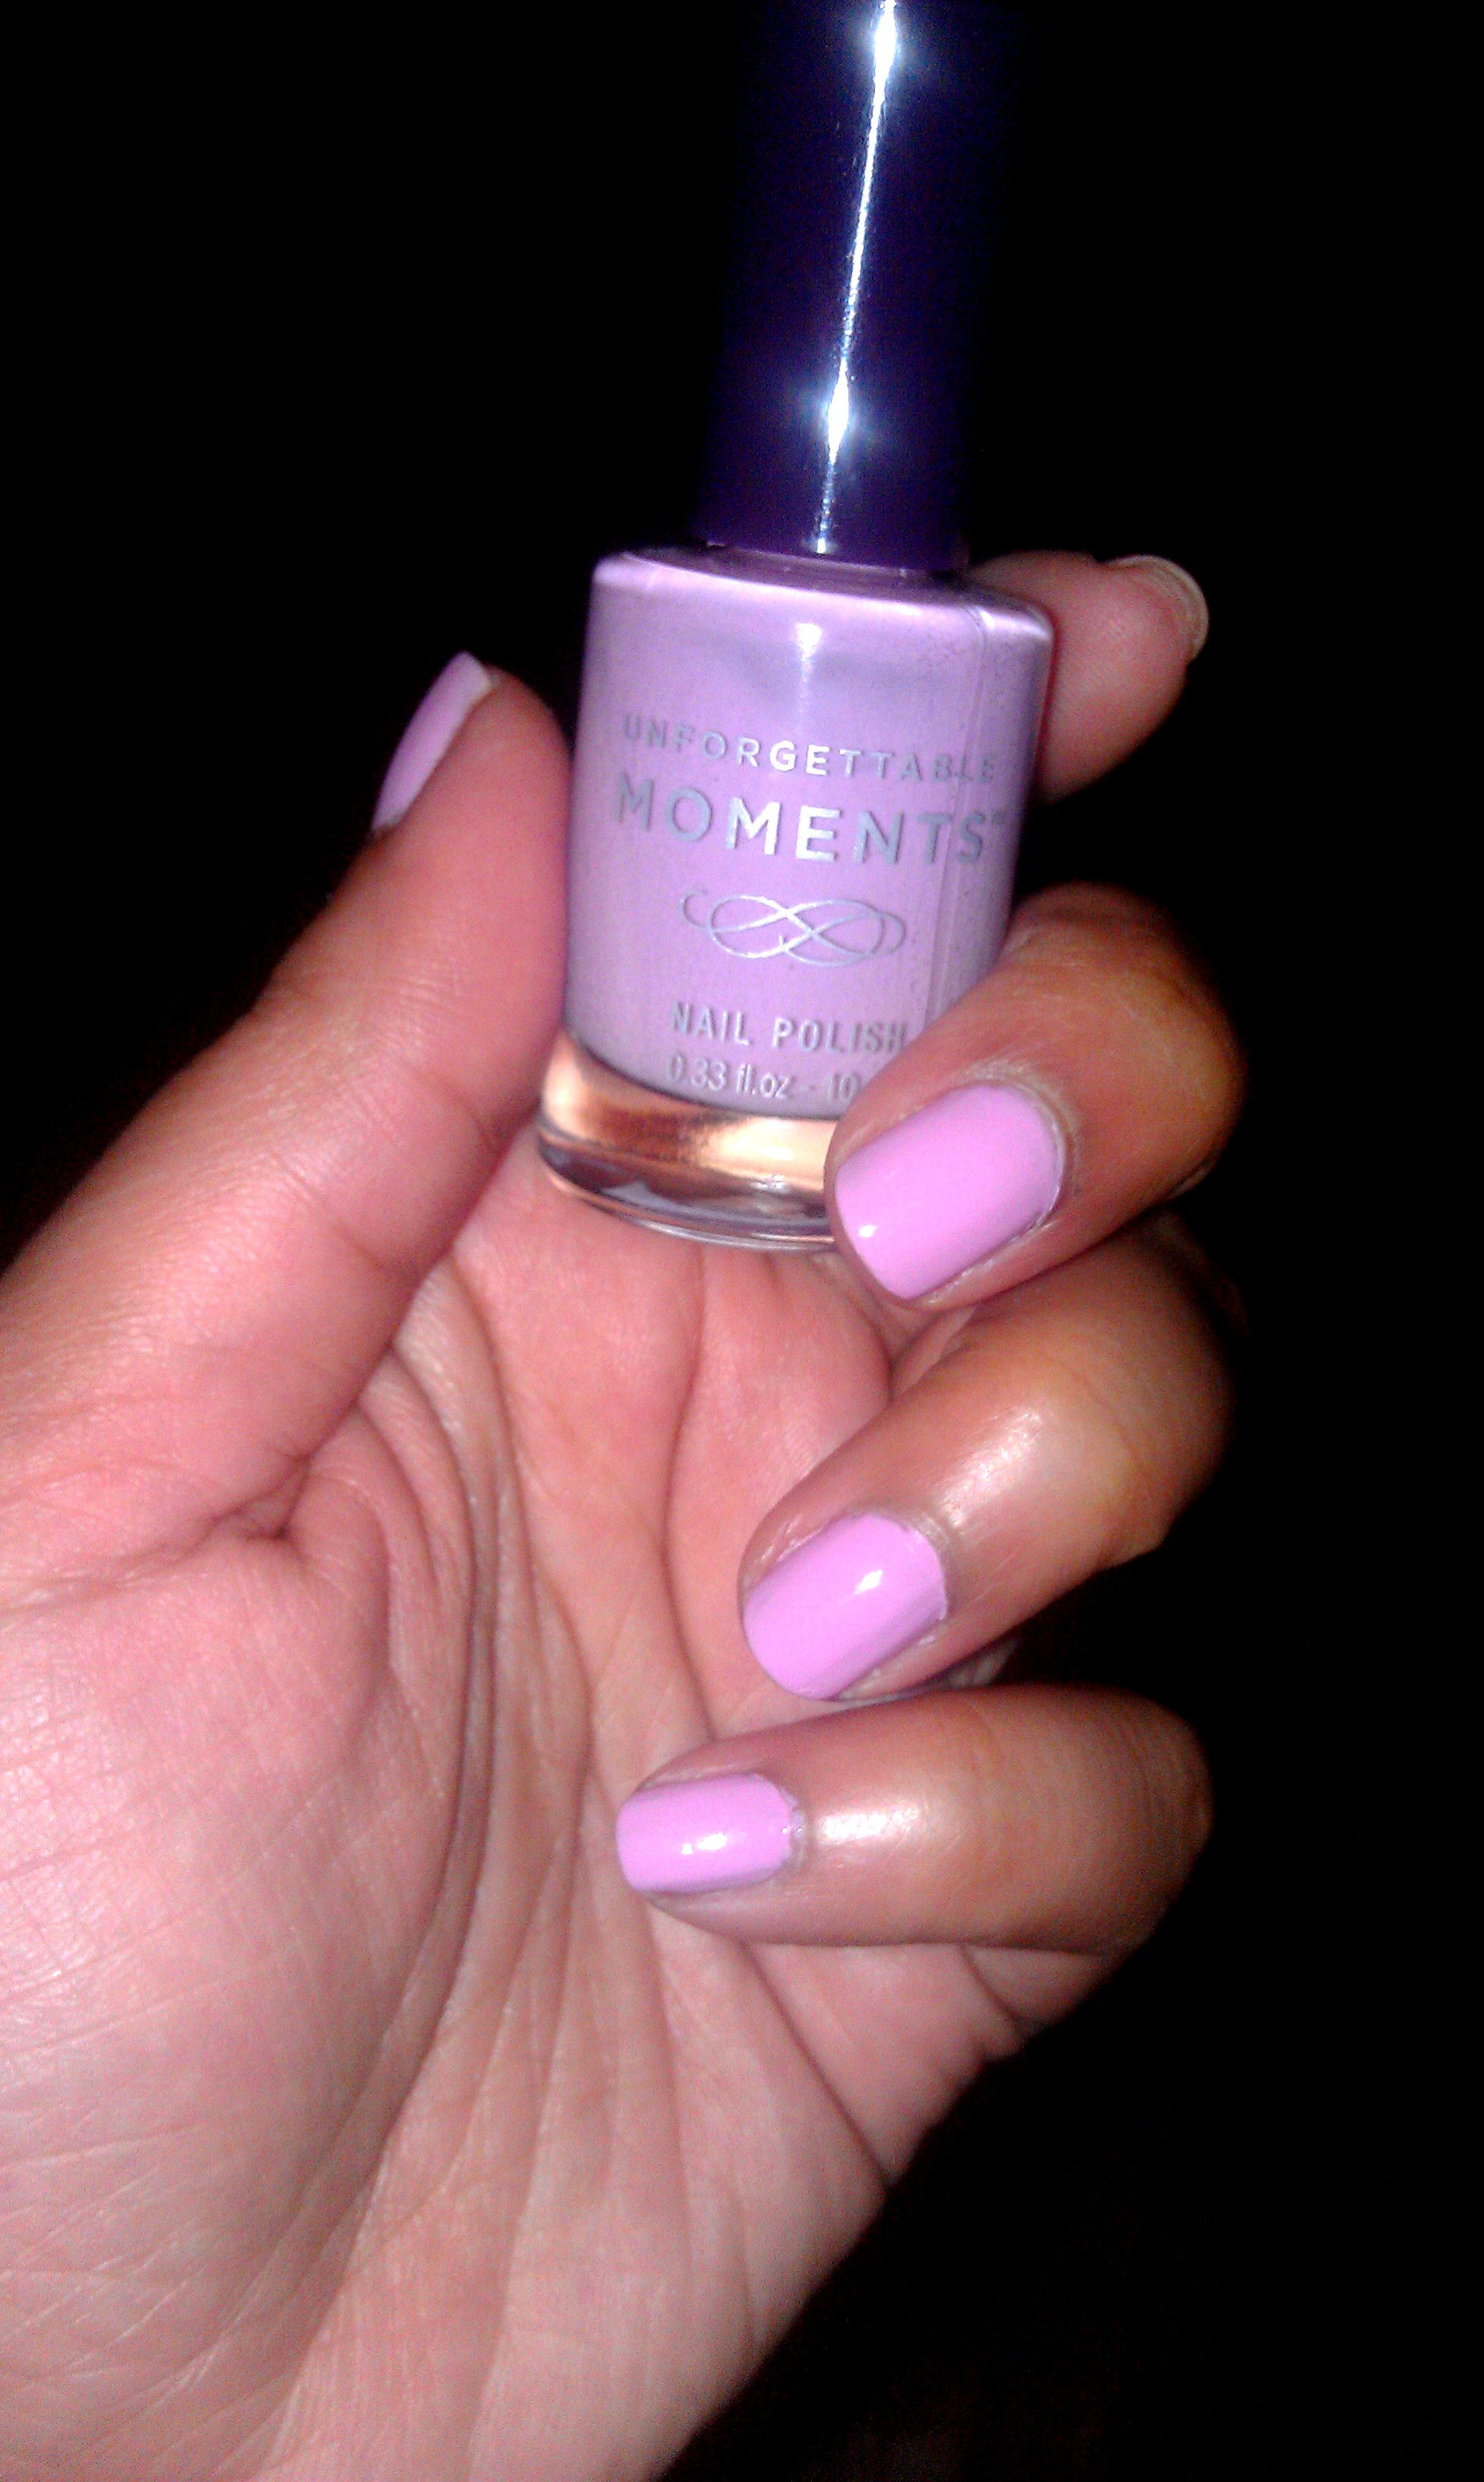 Date Night Makeup: Unforgettable Moments Nail Polish In Lilac Love ...